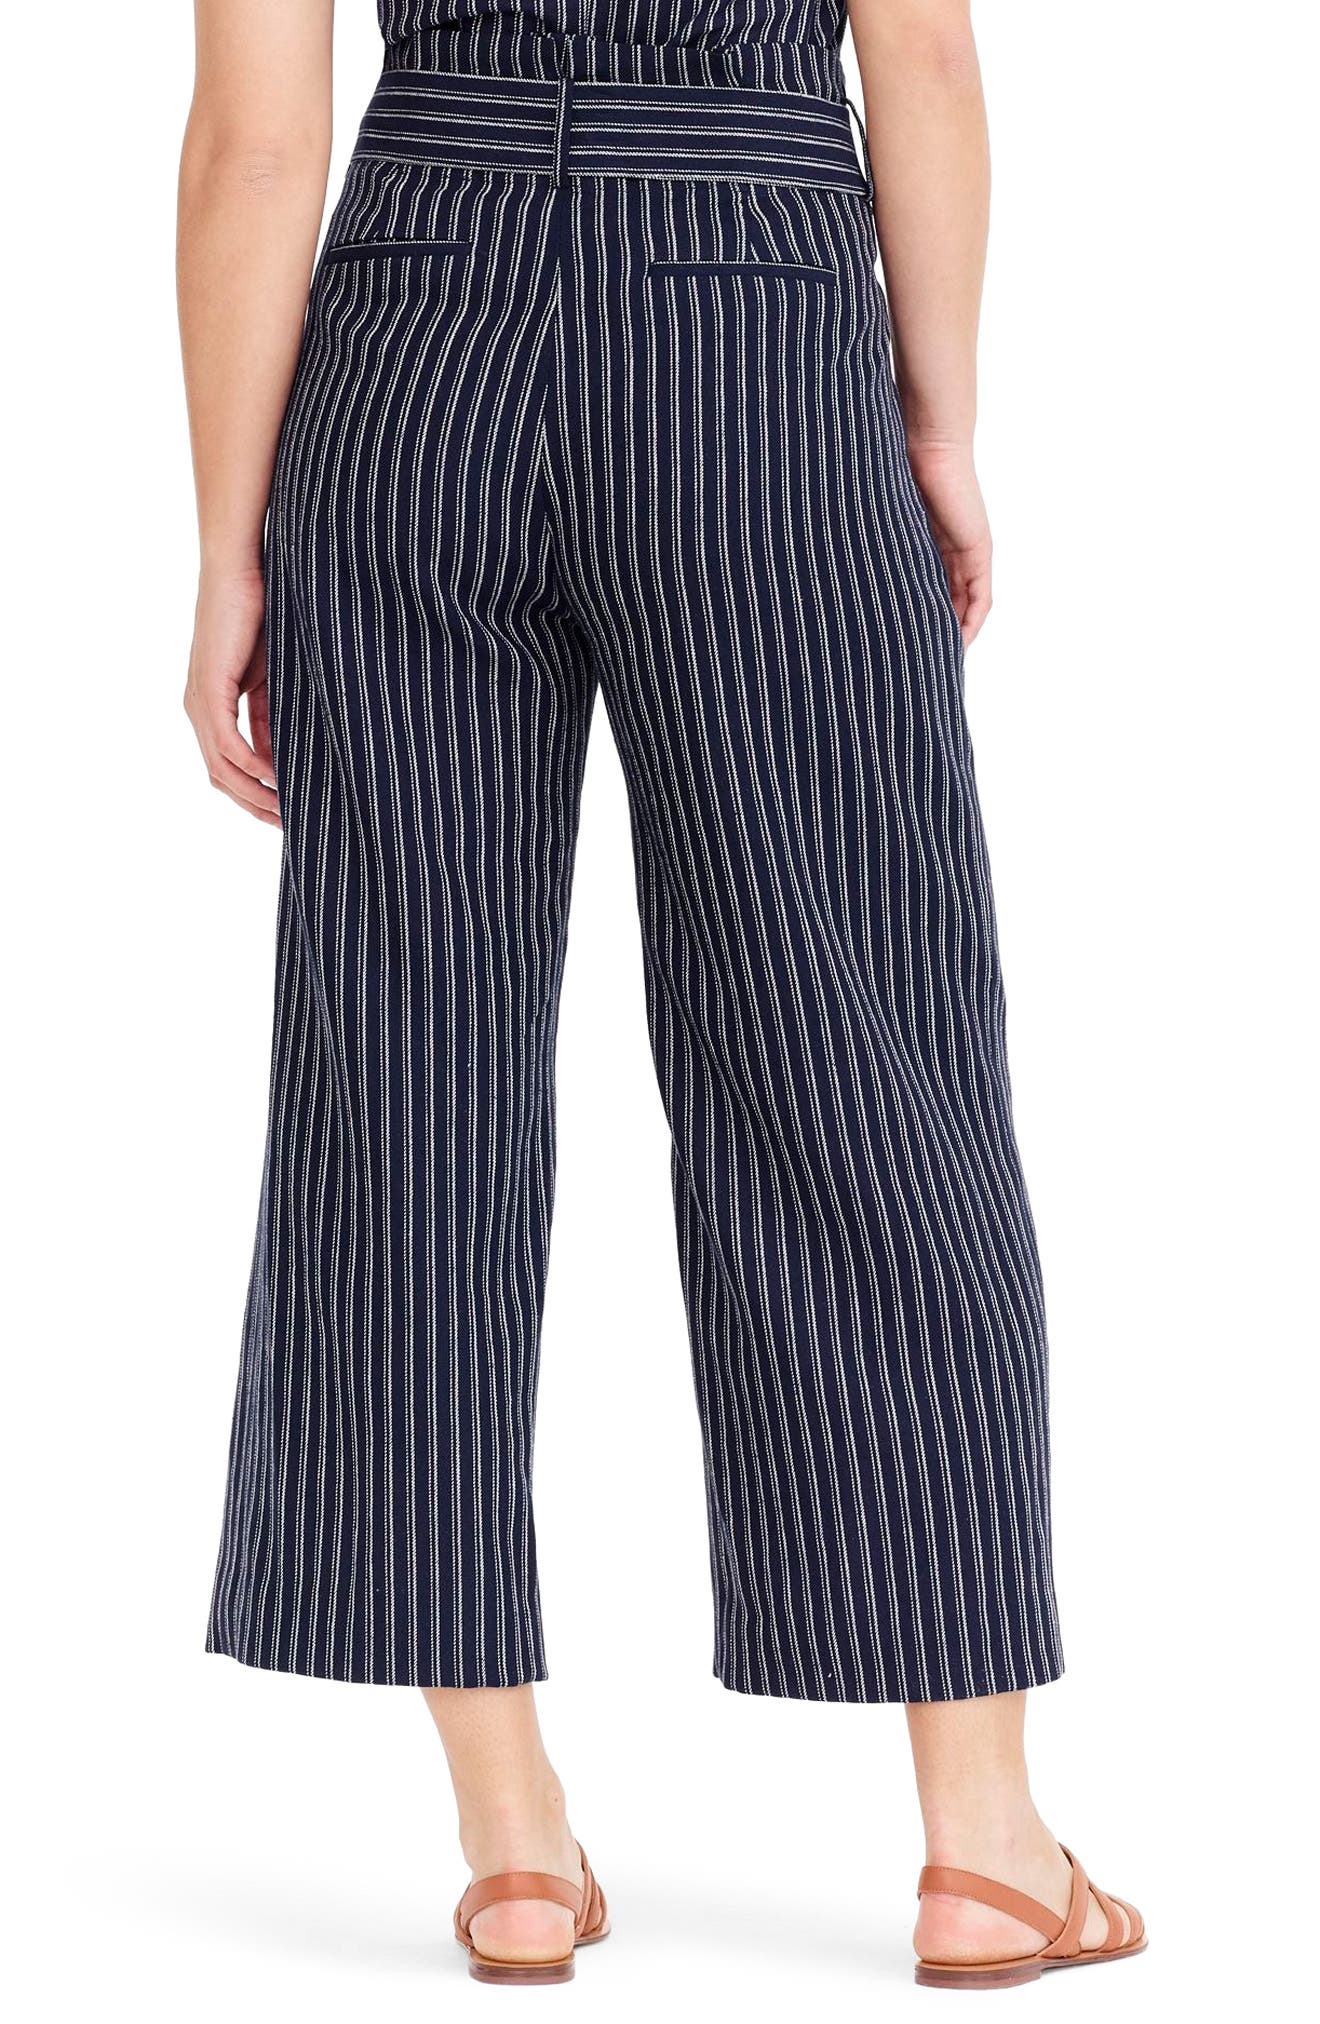 Point Sur Paperbag Pants,                             Alternate thumbnail 2, color,                             Navy White Stripe